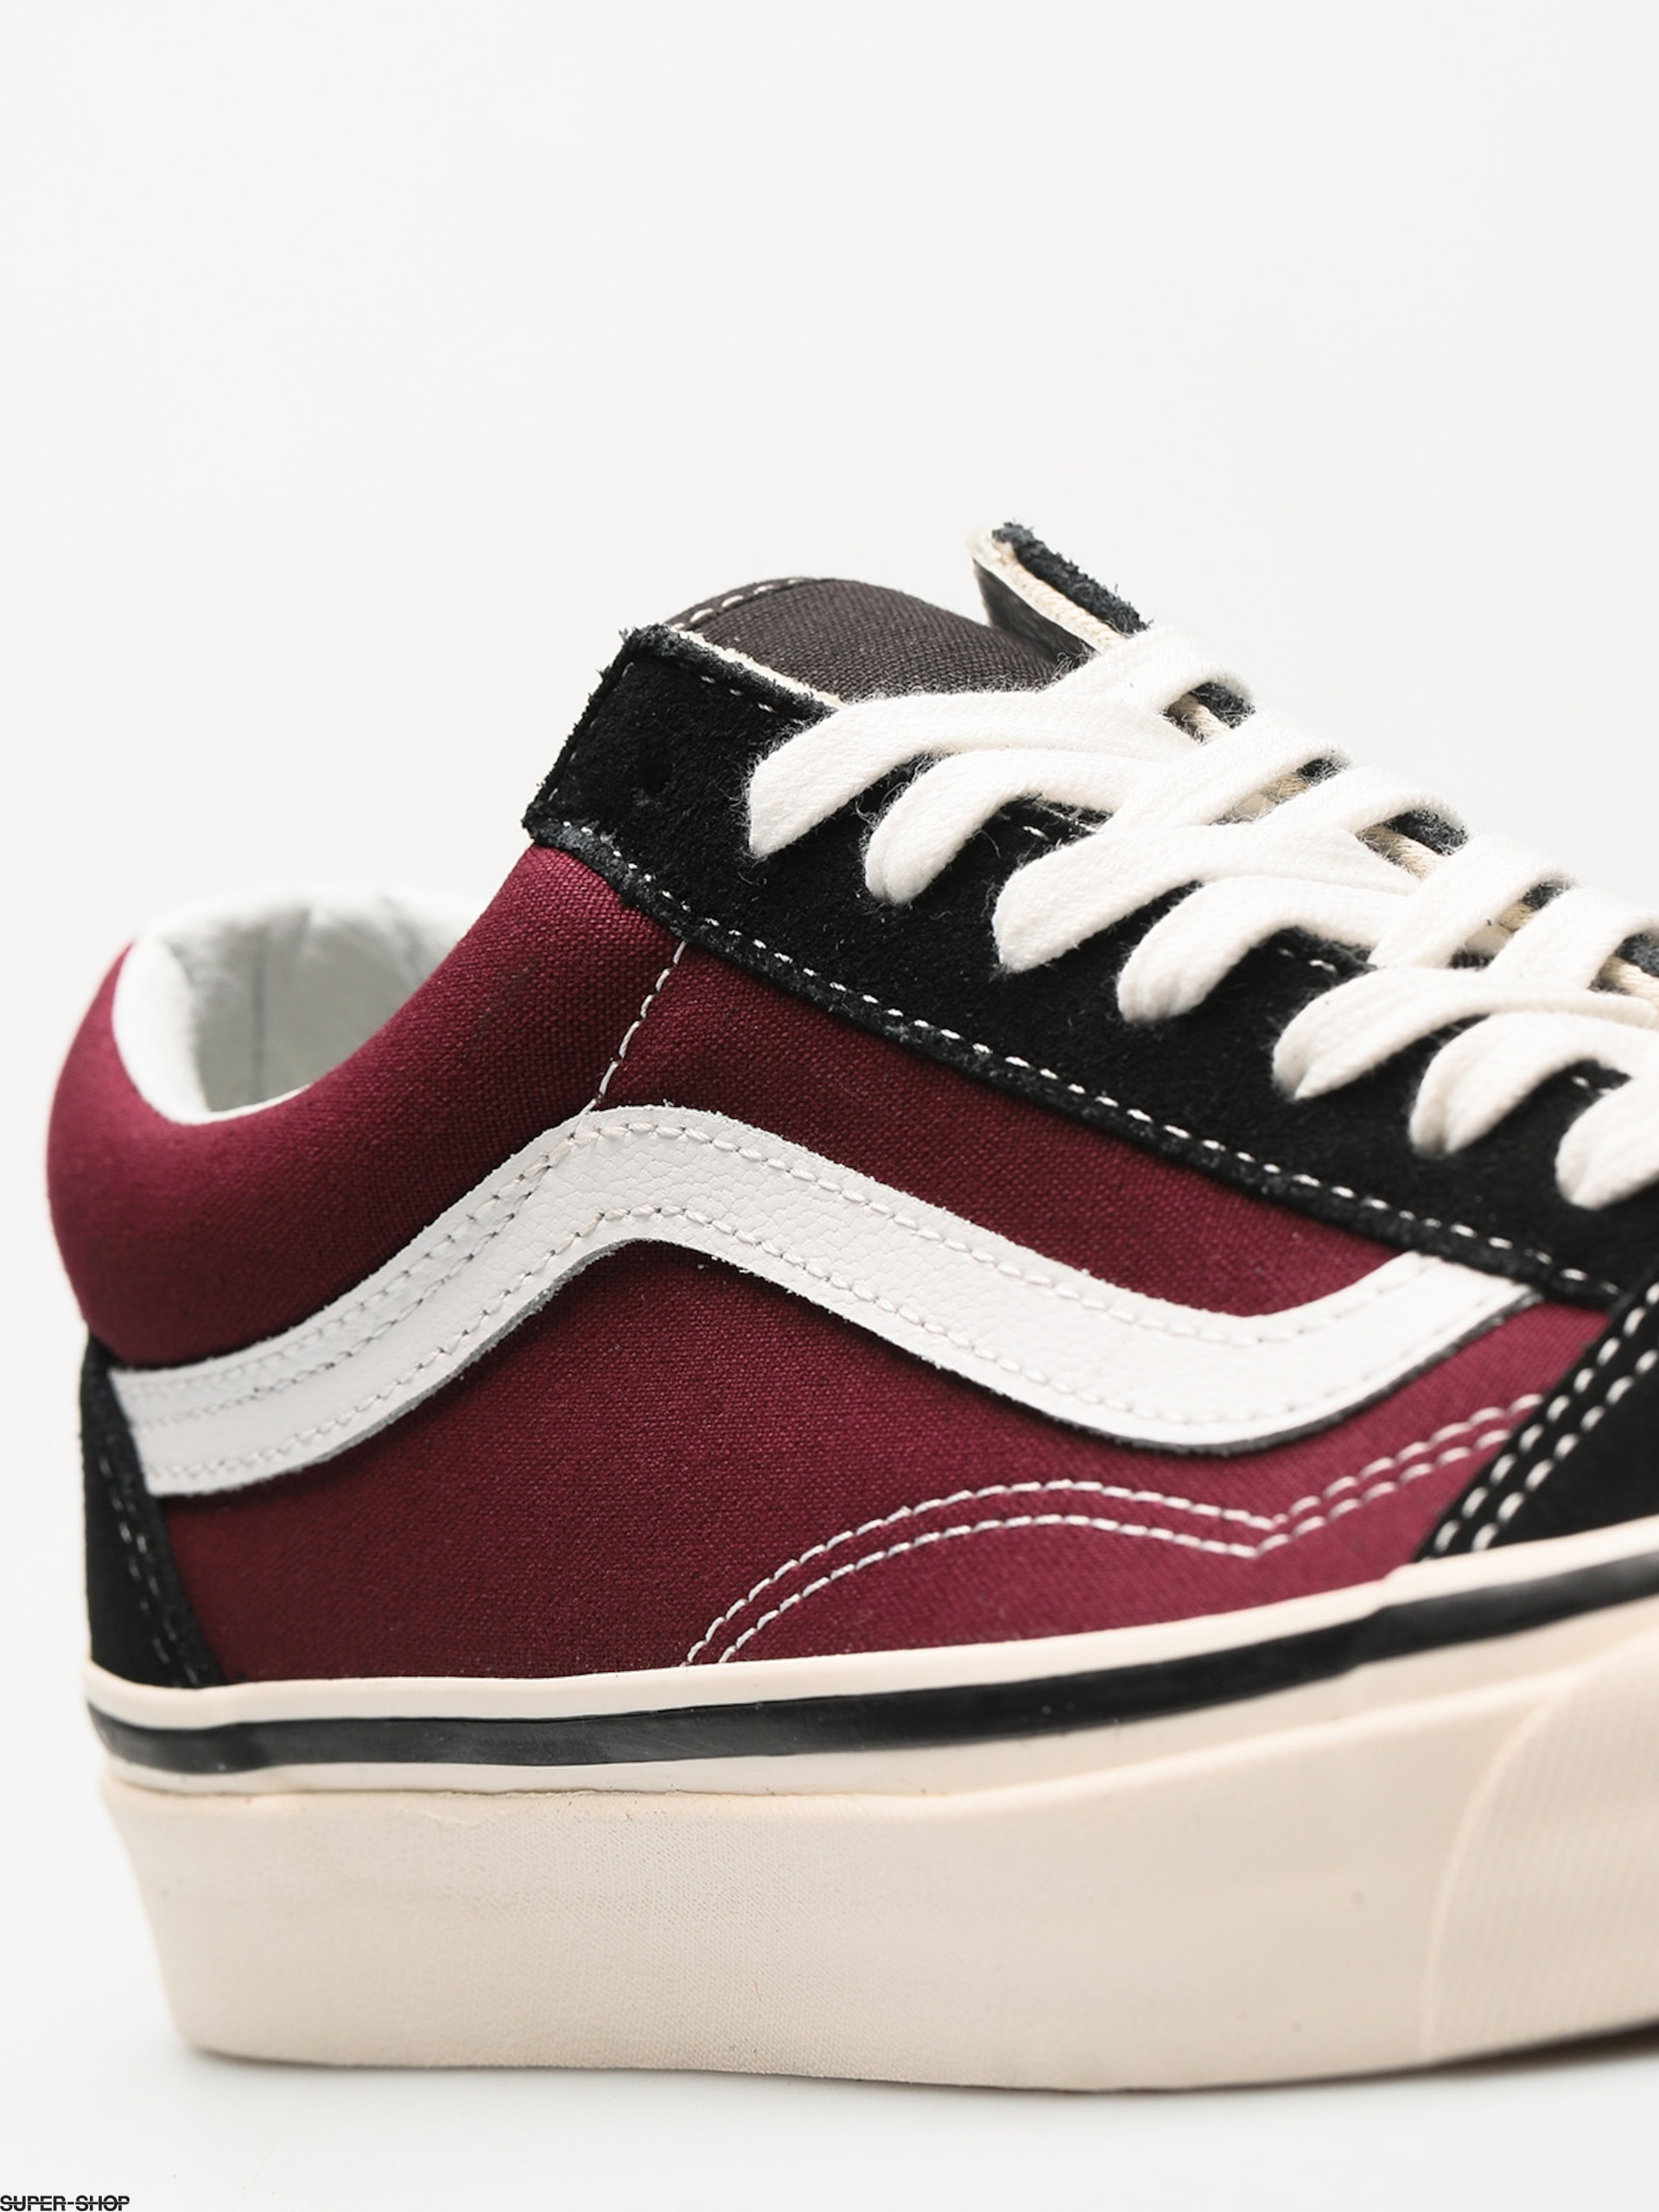 stort urval av erkända varumärken AliExpress Vans Shoes Old Skool 36 Dx (anaheim/factory/black/og/burgundy)